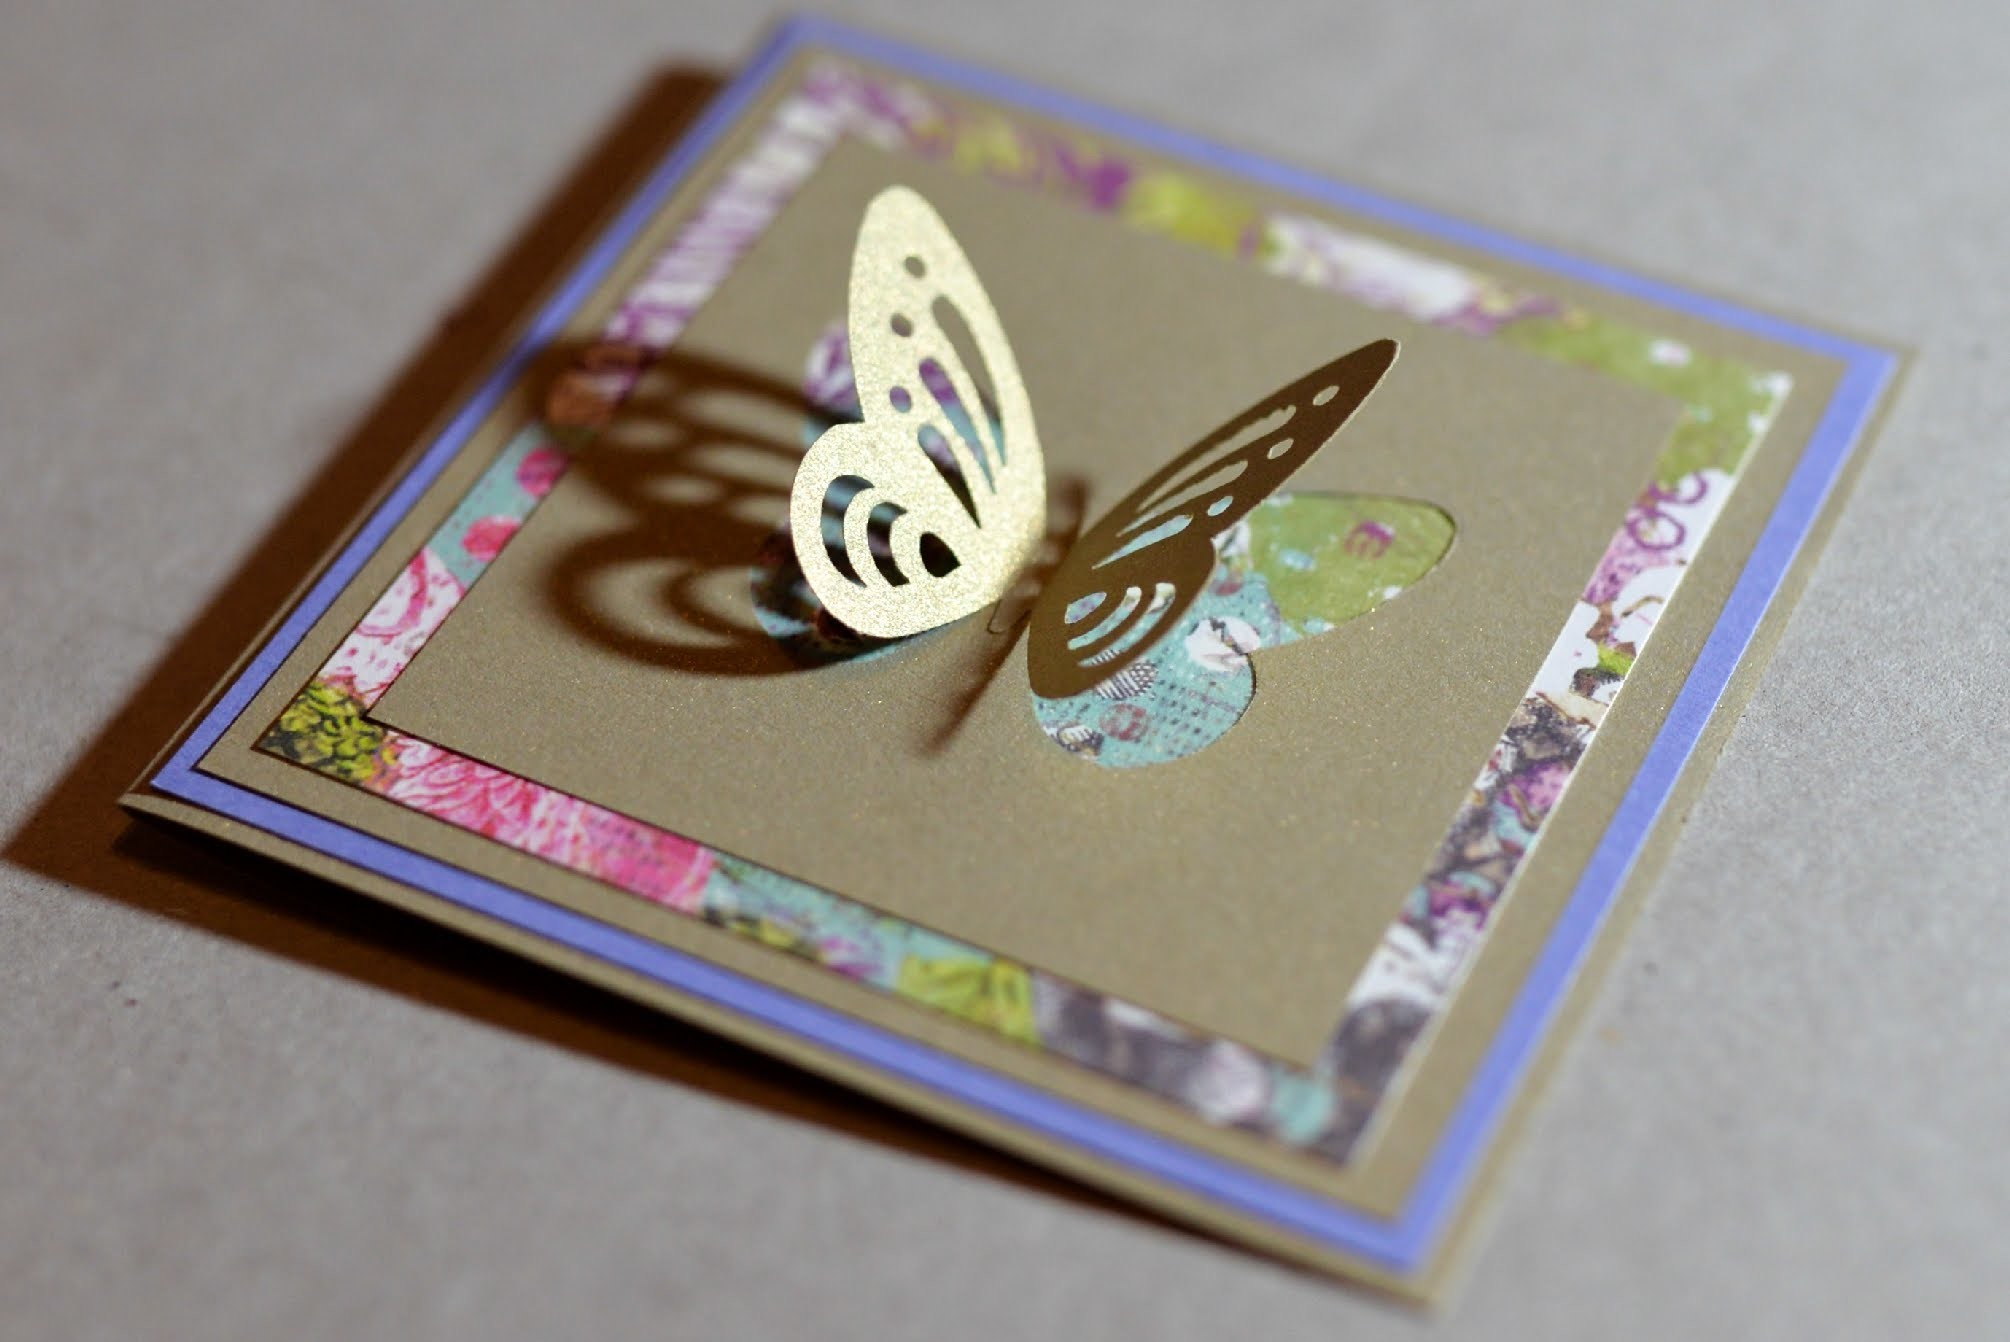 How to Make - Spring Greeting Card With Butterfly - Step by Step | Kartka Z Motylkiem